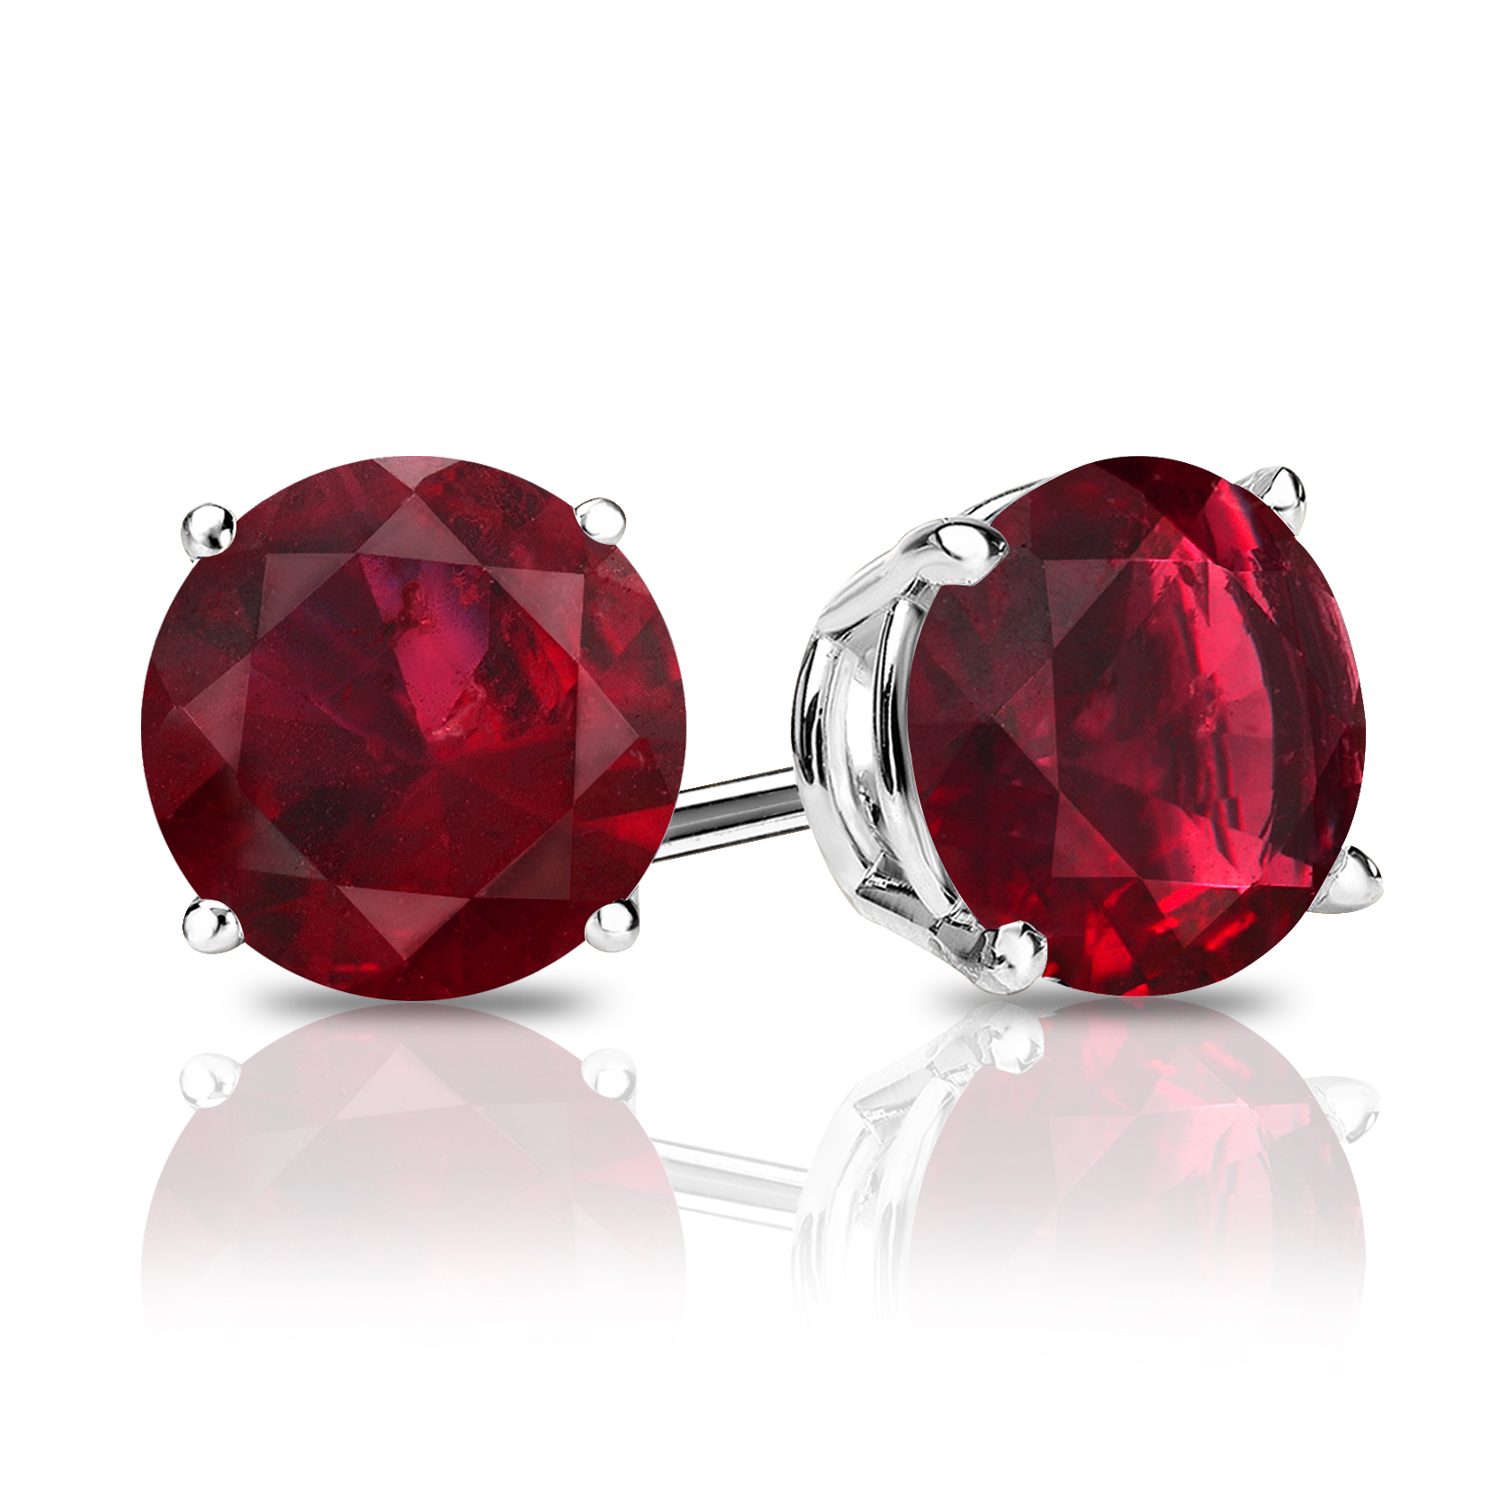 Certified 0.40 cttw Round Ruby Gemstone Stud Earrings in 14k White Gold 4-Prong Basket (Red, AAA)